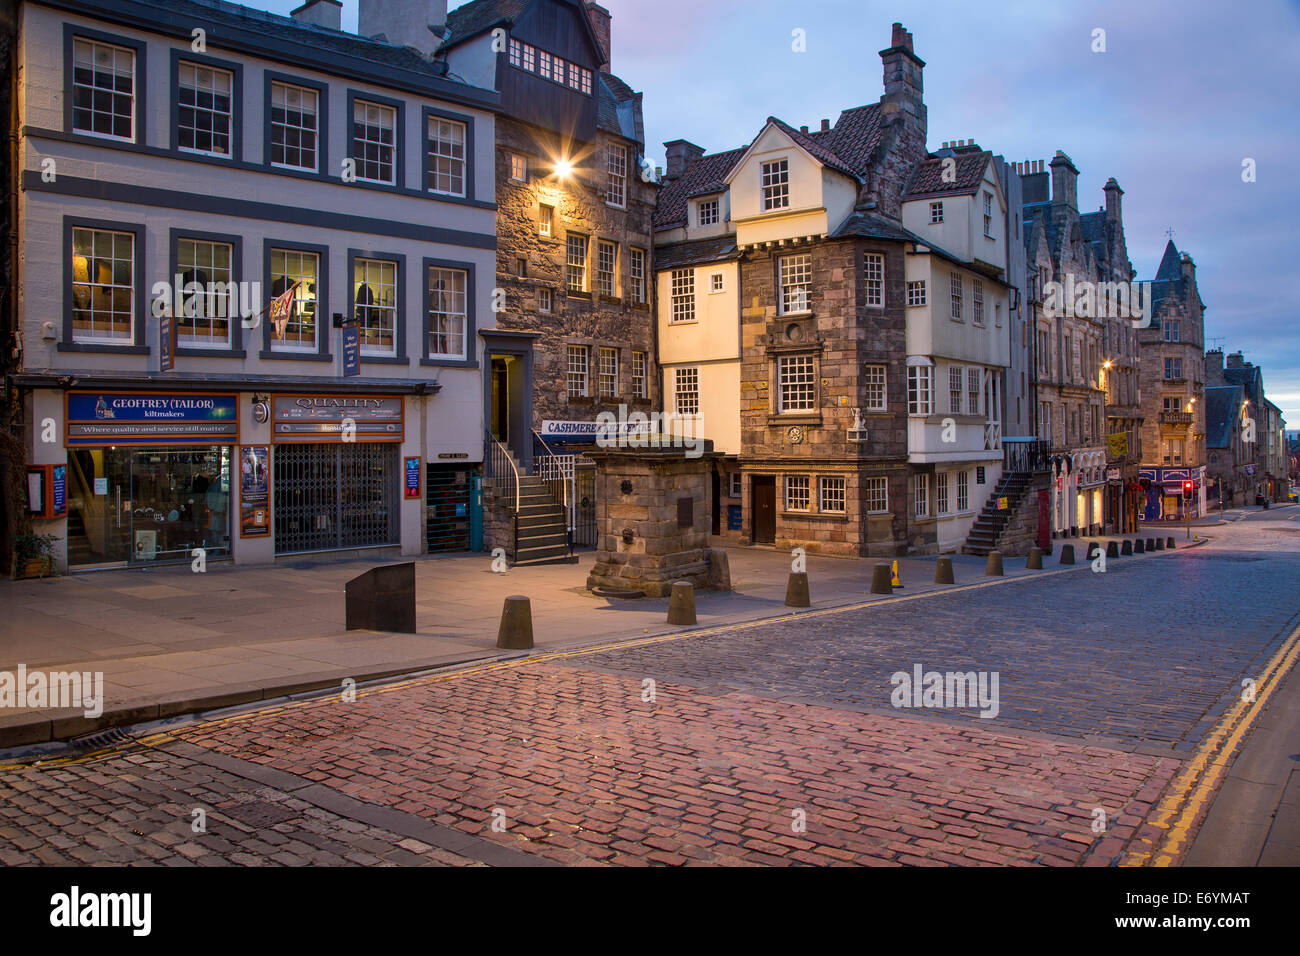 The John Knox and Moubray homes (oldest homes in town) along a deserted Royal Mile Street, Edinburgh, Lothian, Scotland Stock Photo